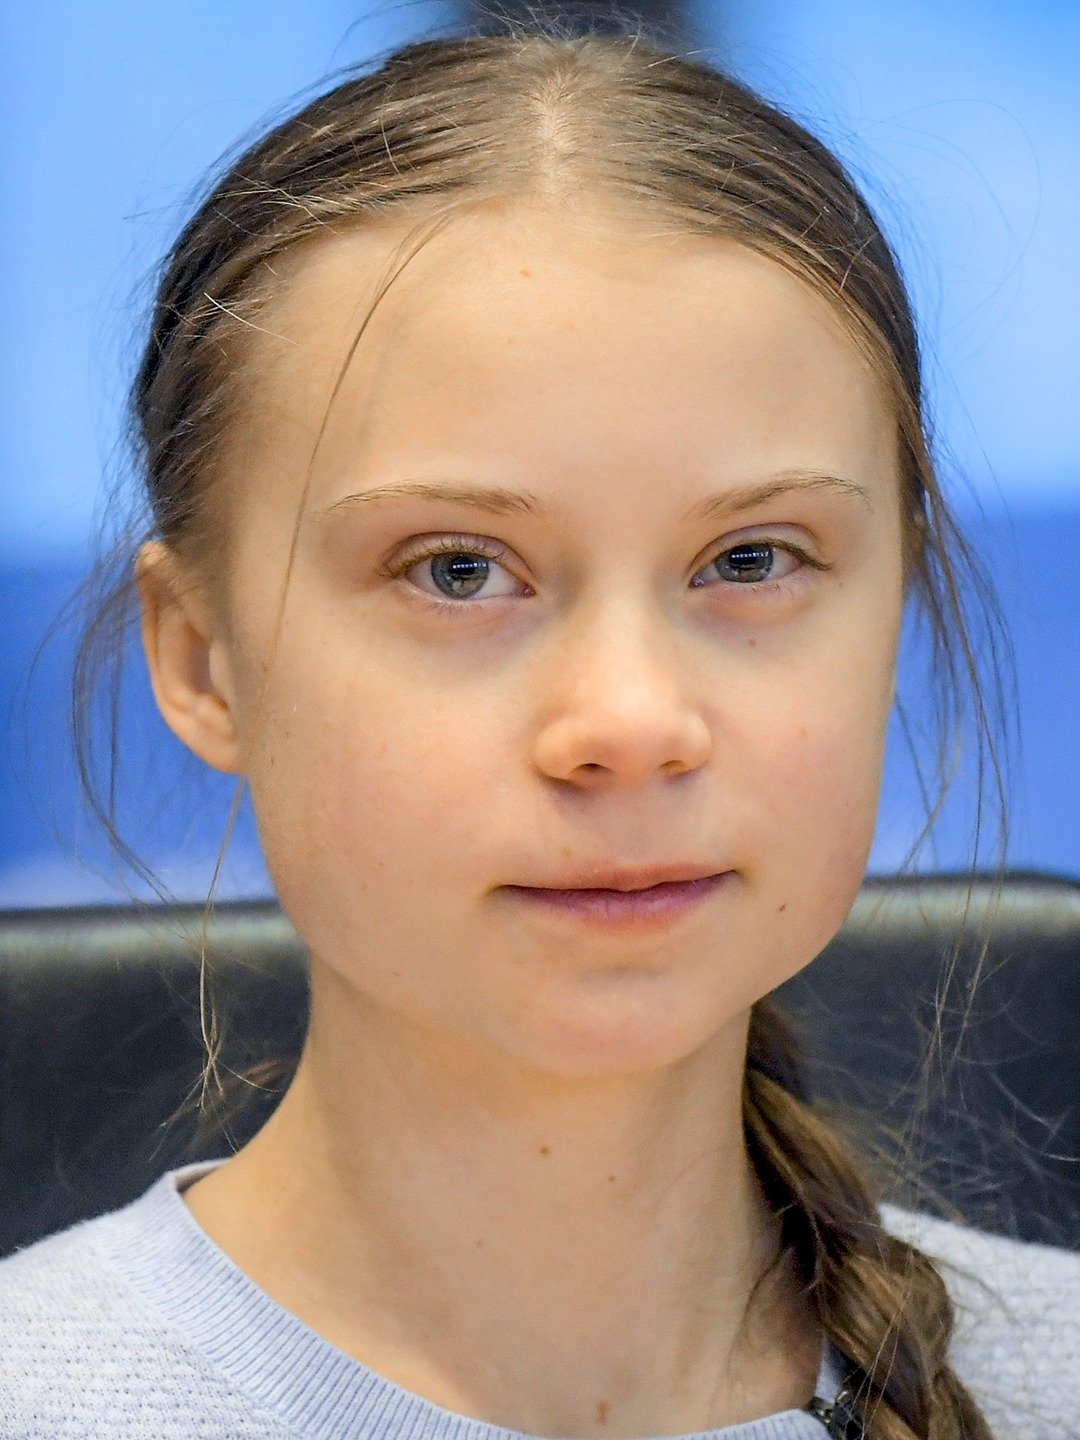 World News Roundup: Greta Thunberg takes climate strike online again as Sweden's COVID-19 cases mount; Strong earthquake strikes Aegean Sea, shaking Turkey, Greece and more